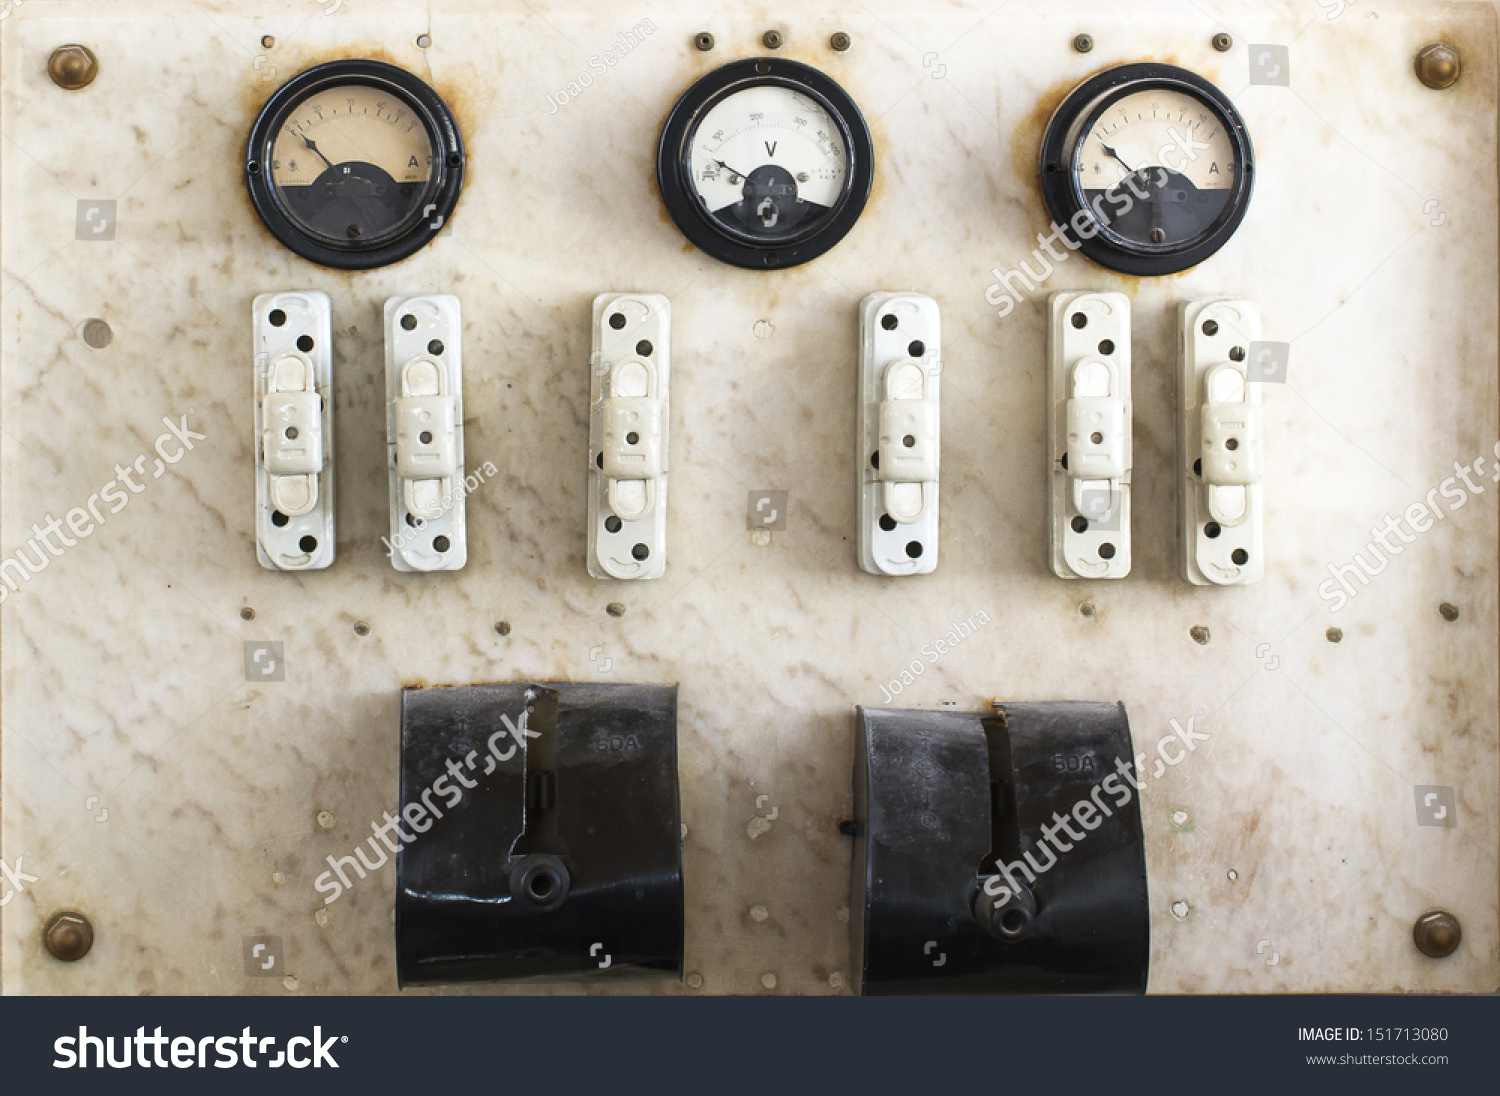 Vintage Fuse Box Switch Stock Photo Edit Now 151713080 Shutterstock And